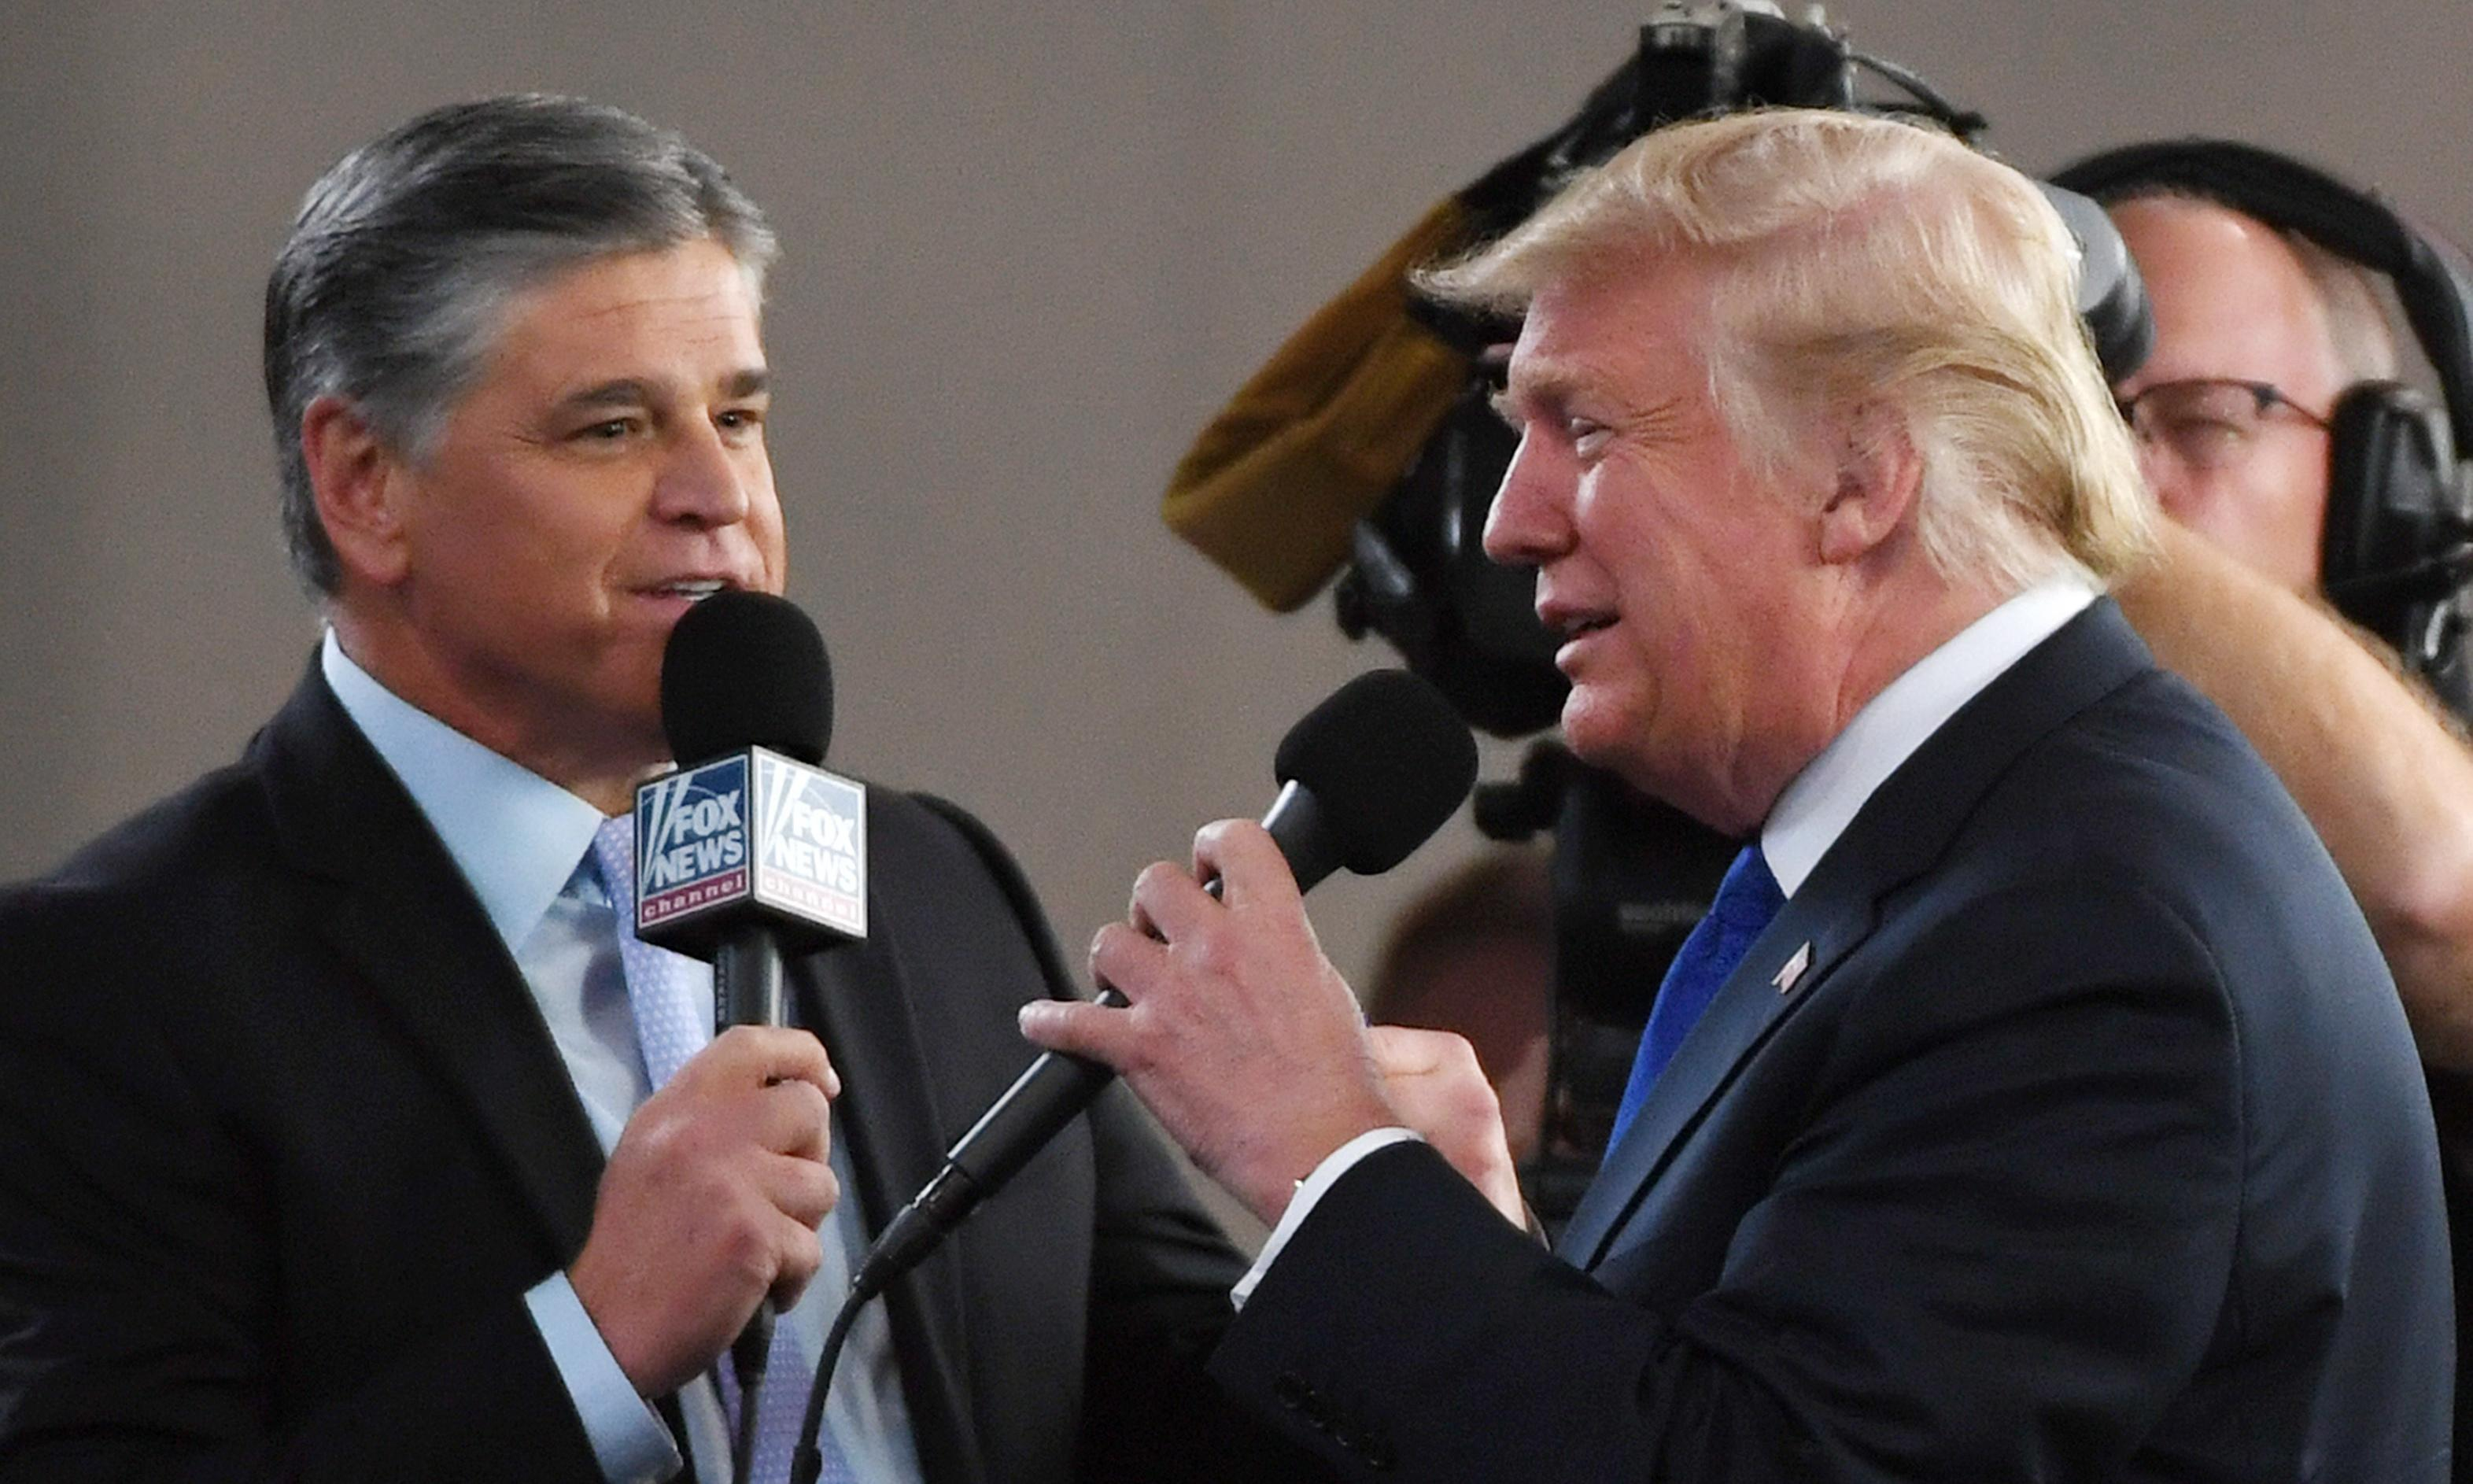 Trouble in paradise: Trump attacks Fox News – and Fox News hits back